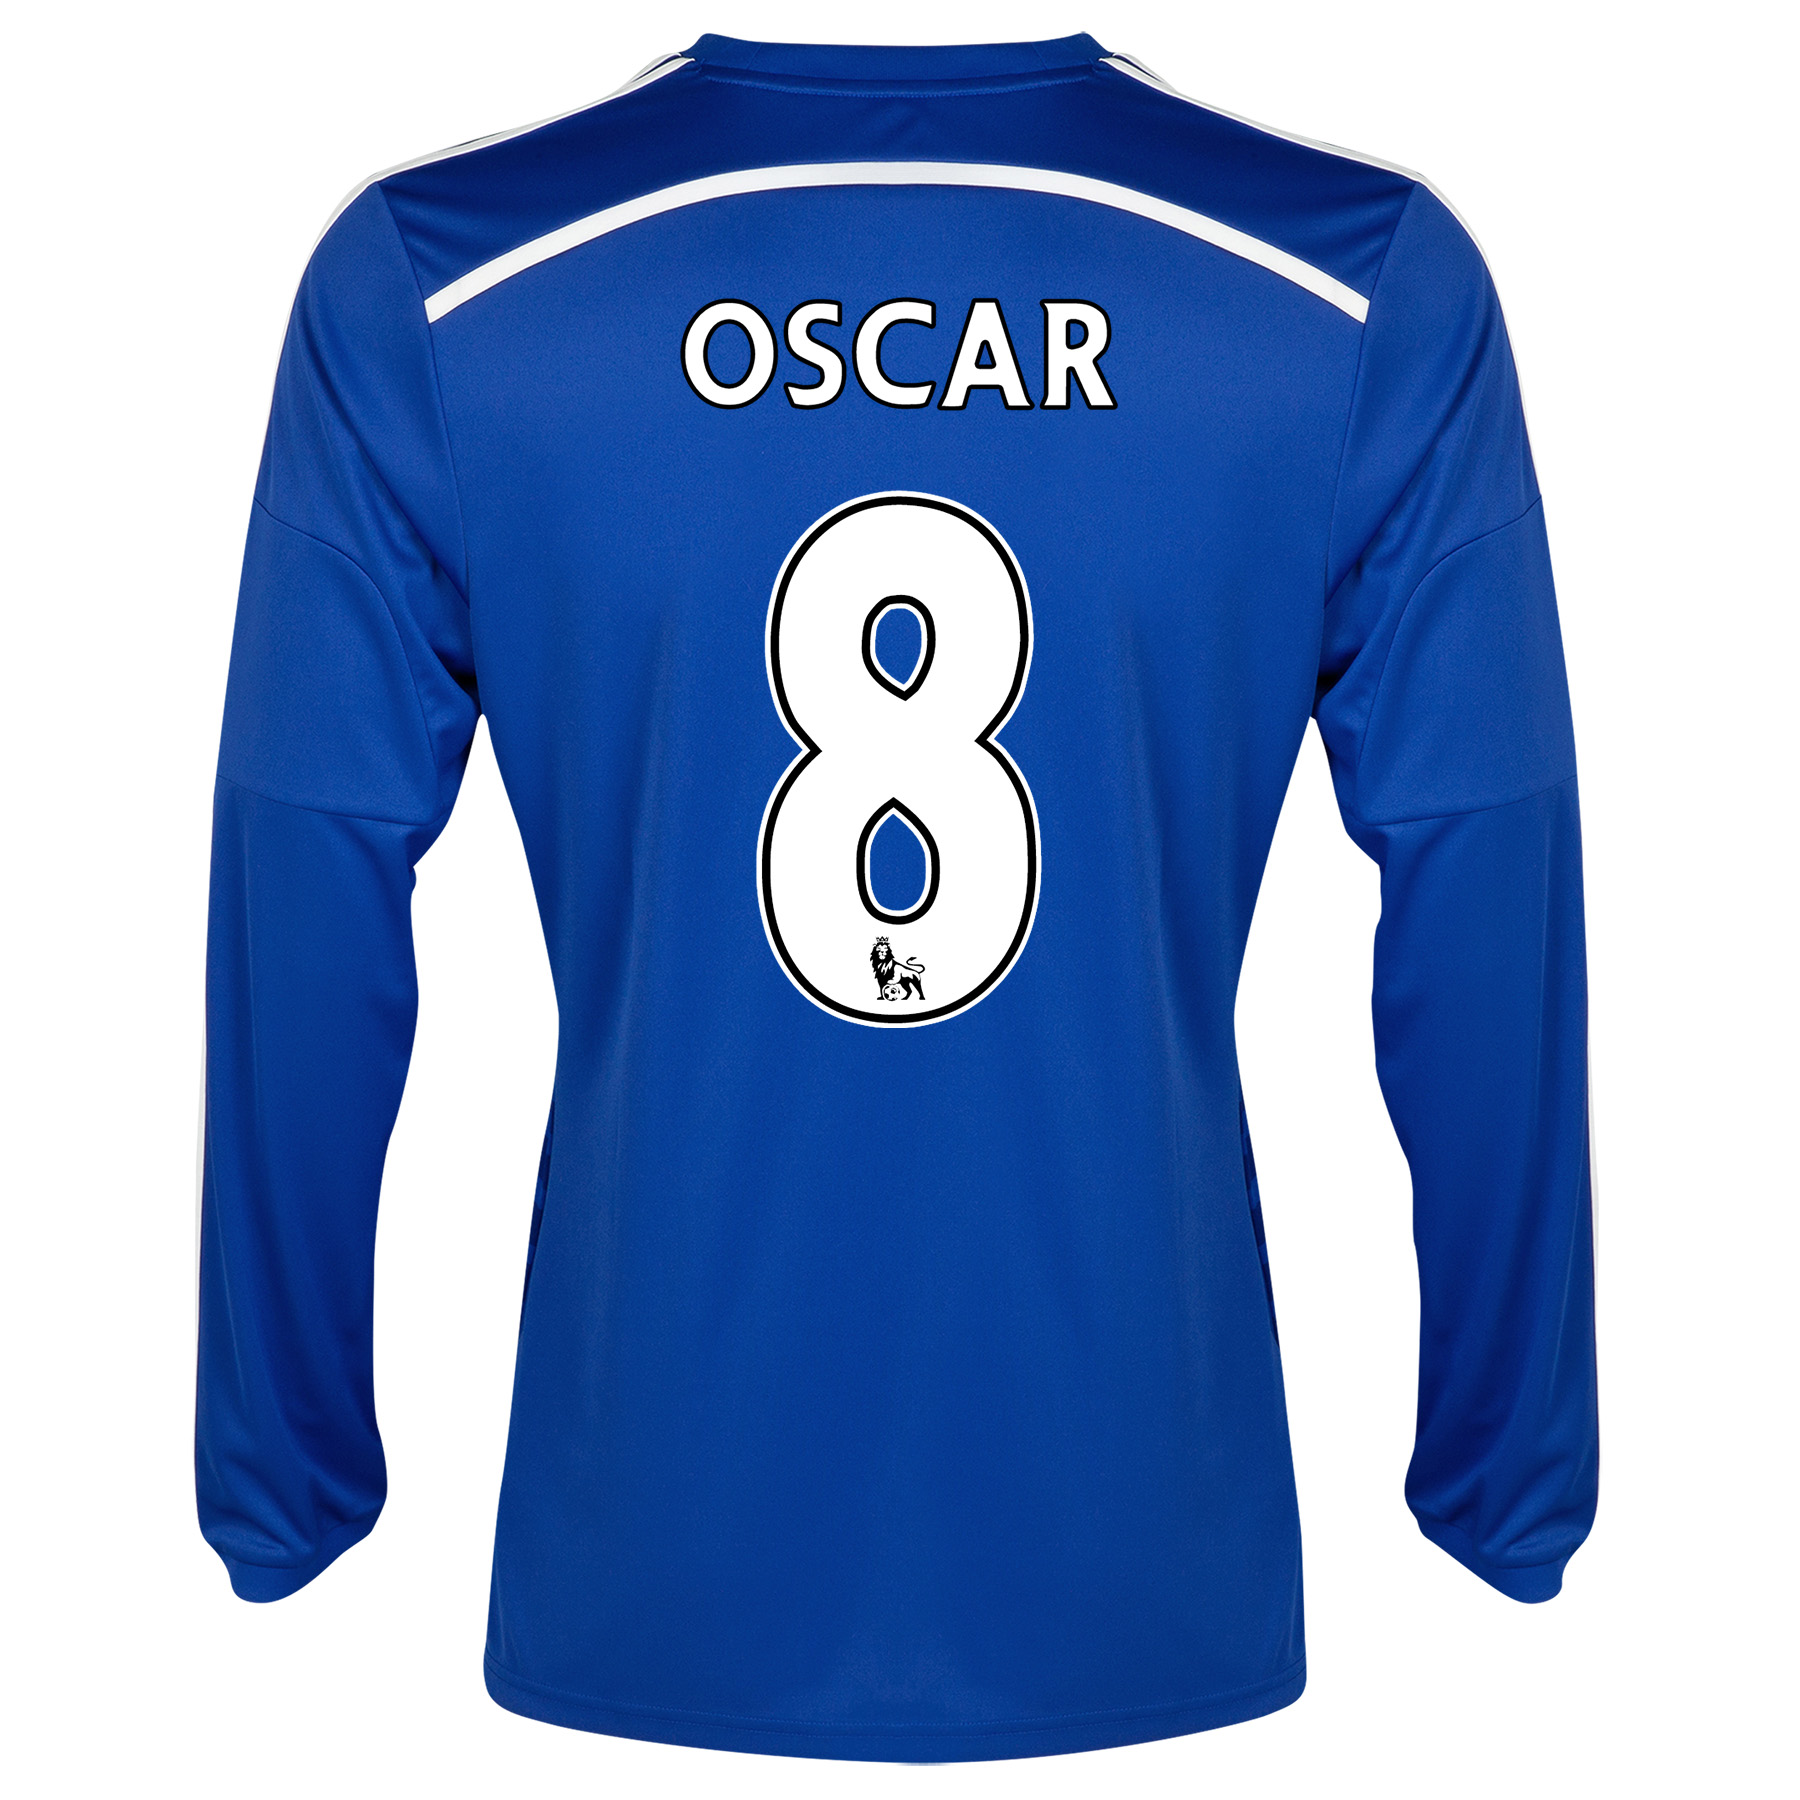 Chelsea Home Shirt 2014/15 - Long Sleeve Blue with Oscar 11 printing